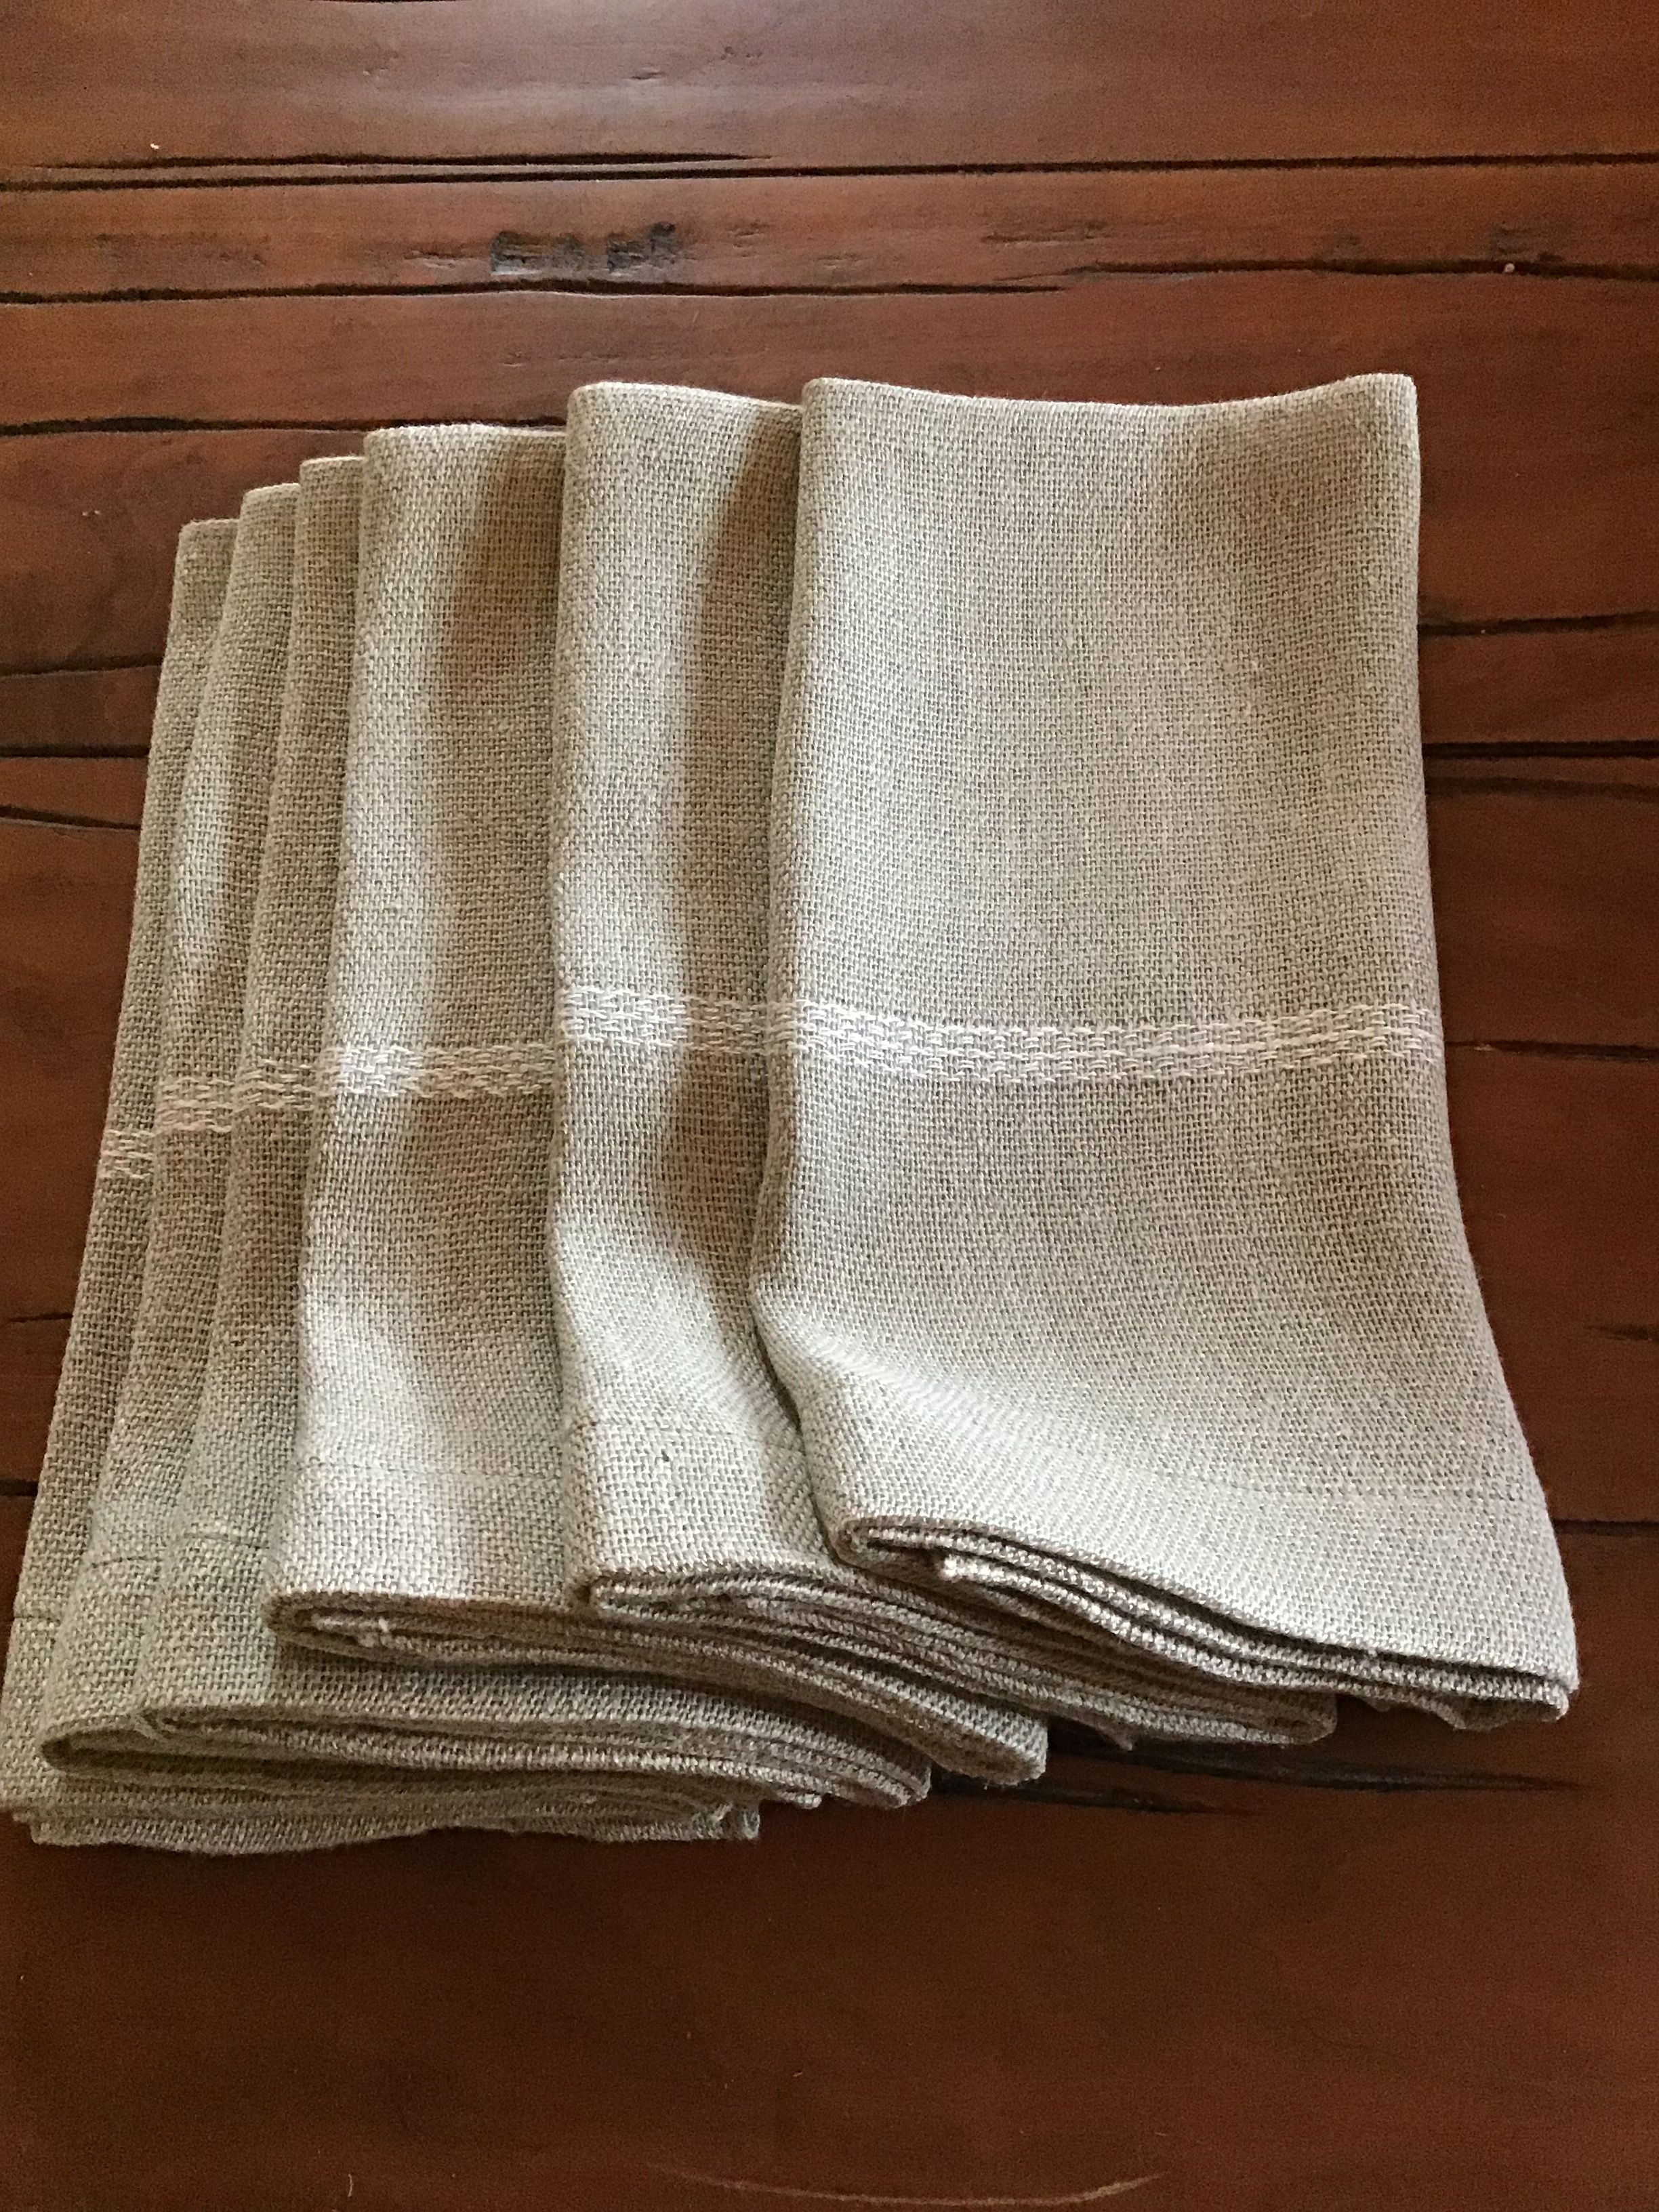 Normandy Linen Napkins Handwoven In Usa By Tammy Eigeman Thompson Napkin Set Of 2 In Taupe With A With White Strip Hand Weaving Linen Napkins Napkins Set